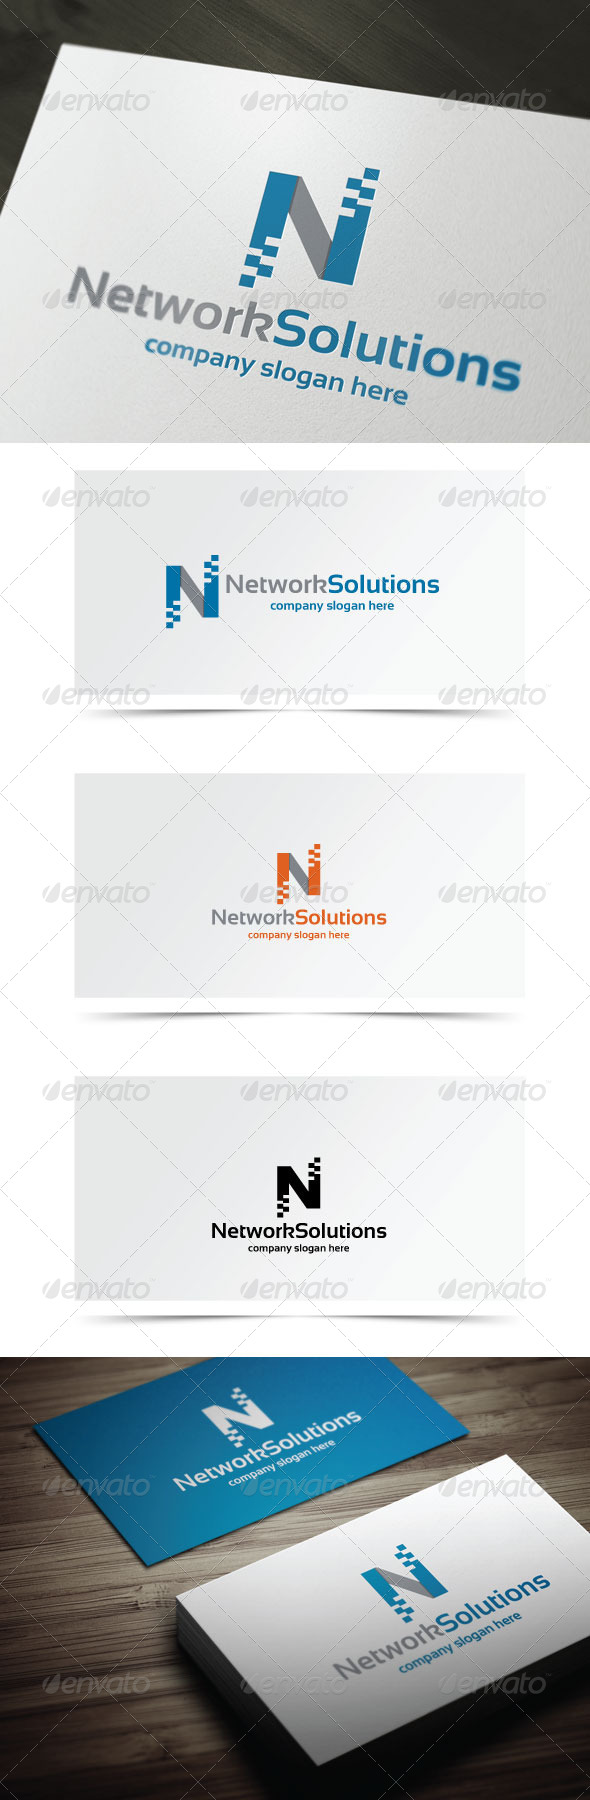 GraphicRiver Network Solutions 6539197